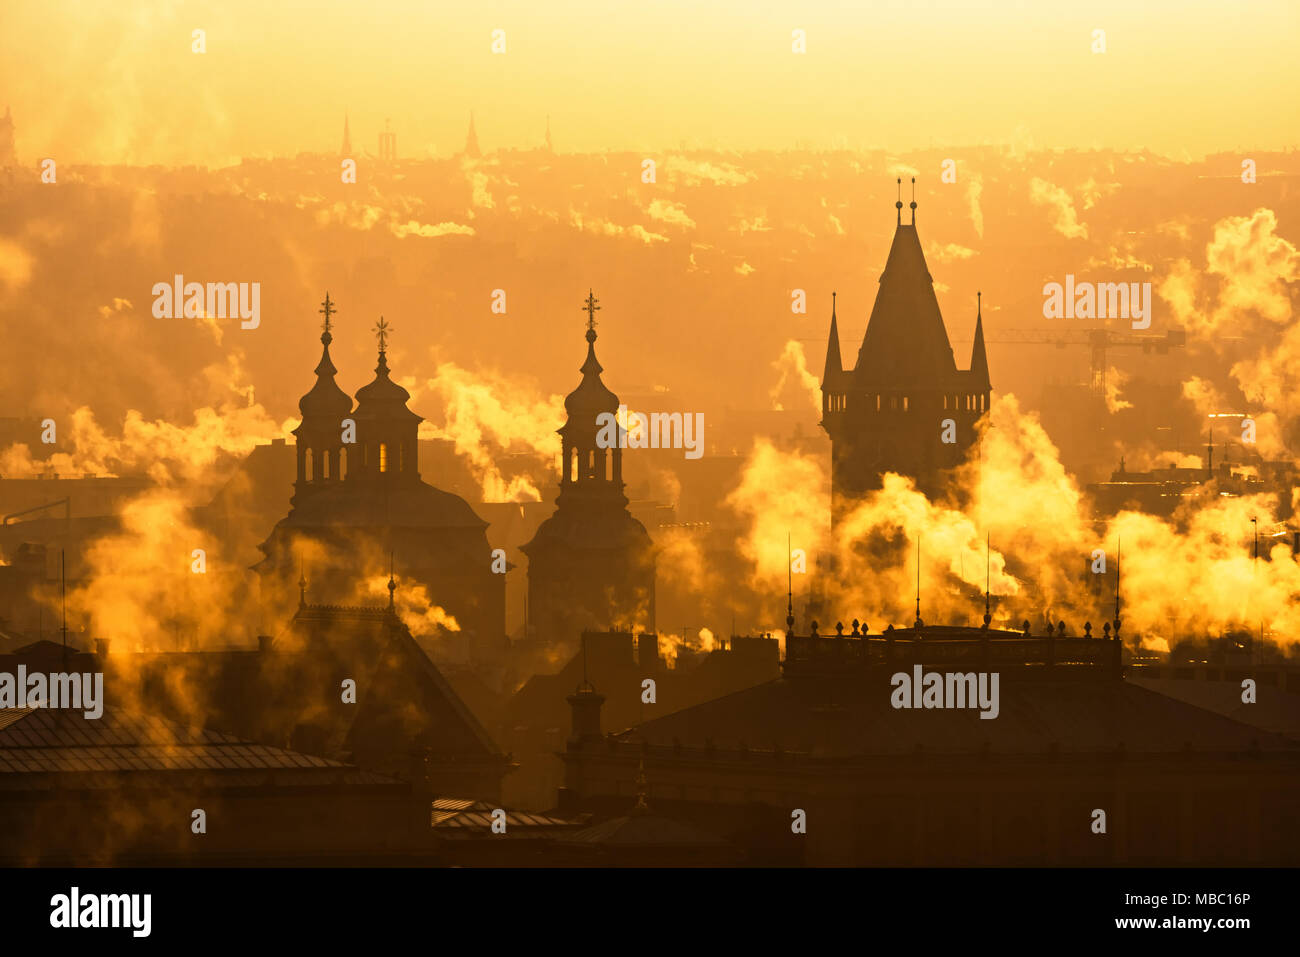 Prague foggy sunrise with historical architecture silhouette, Czech republic. - Stock Image